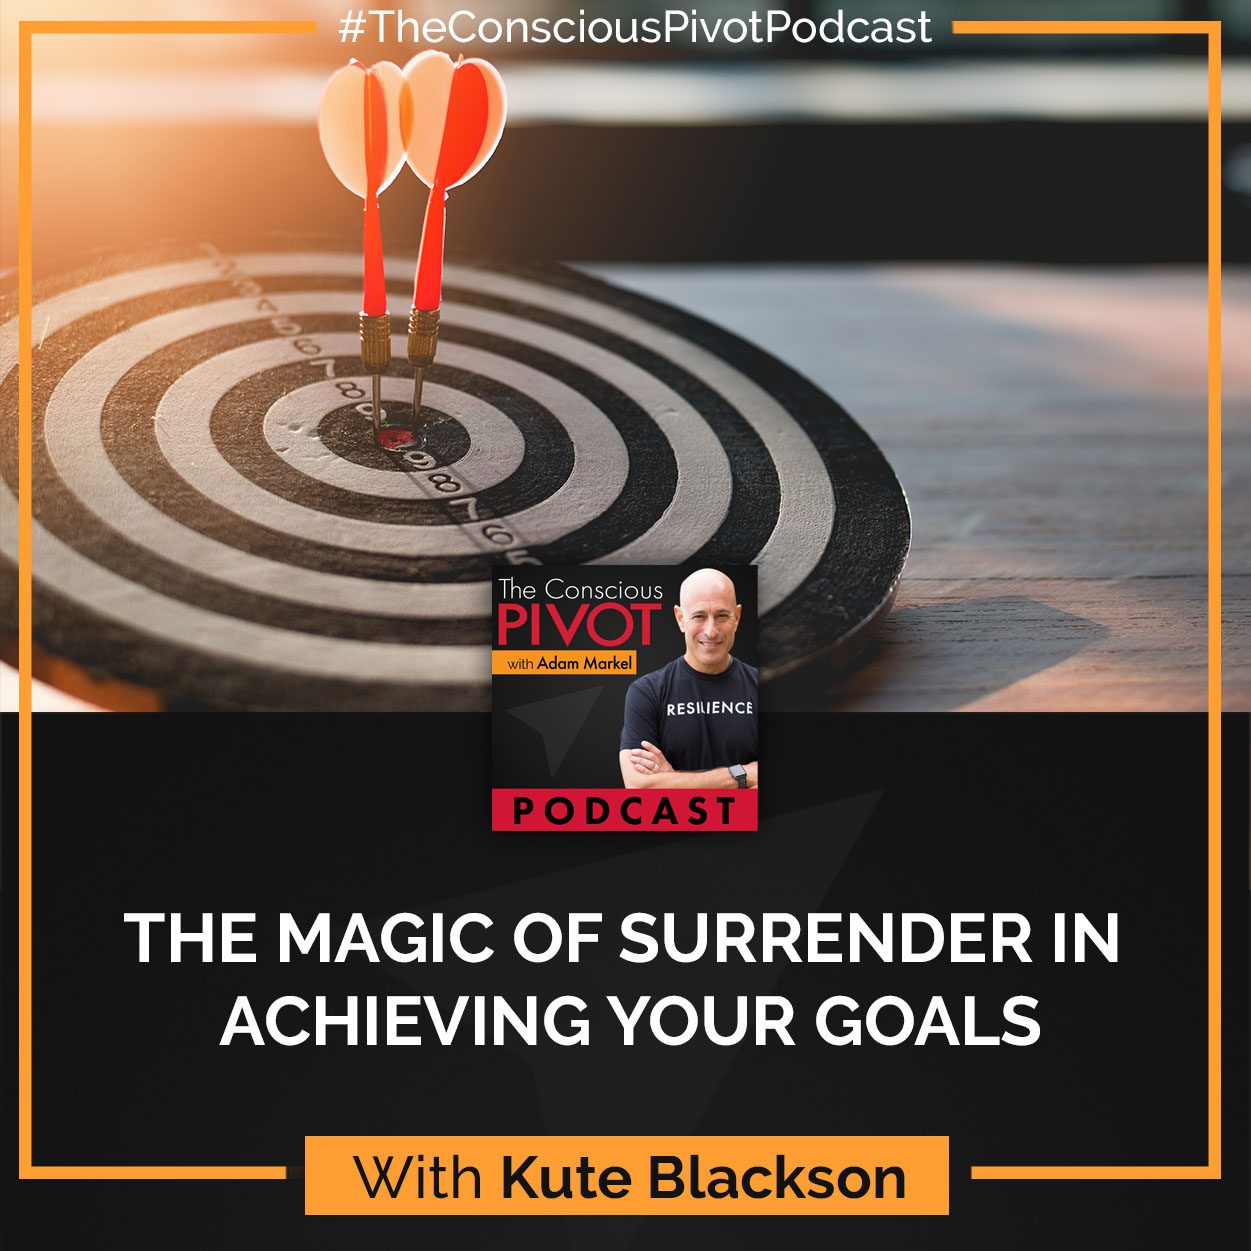 The Magic of Surrender In Achieving Your Goals (with Kute Blackson)